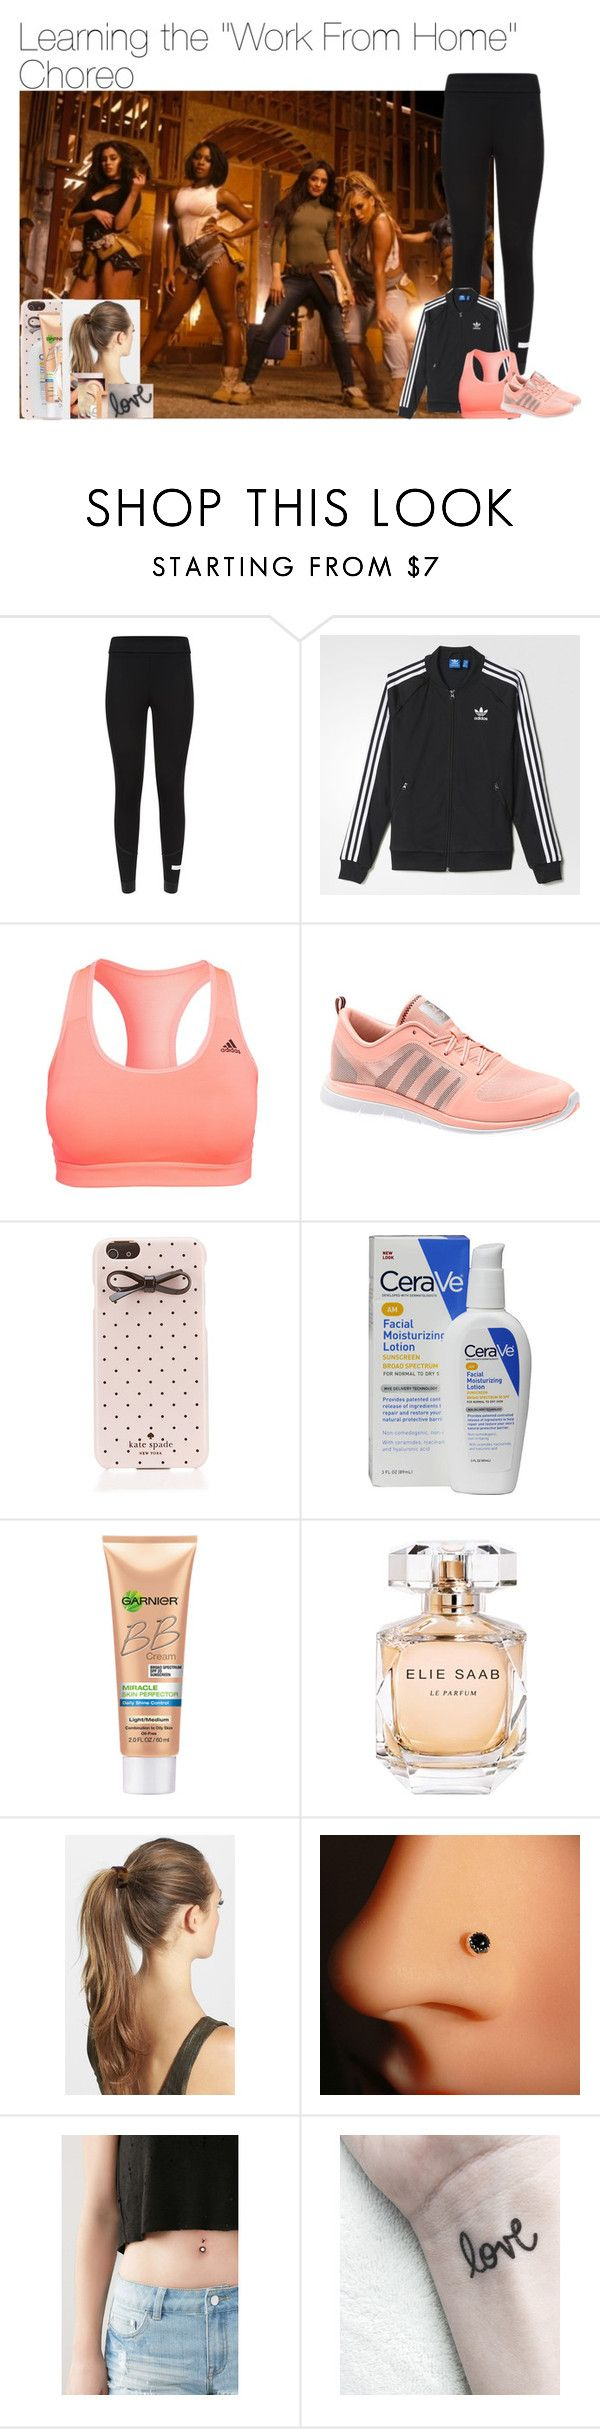 """""""Learning the """"Work From Home"""" Choreography"""" by itsmaddiewoolsey ❤ liked on Polyvore featuring adidas, Kate Spade, CeraVe, Miracle Skin Transformer, Elie Saab, France Luxe and Forever 21"""